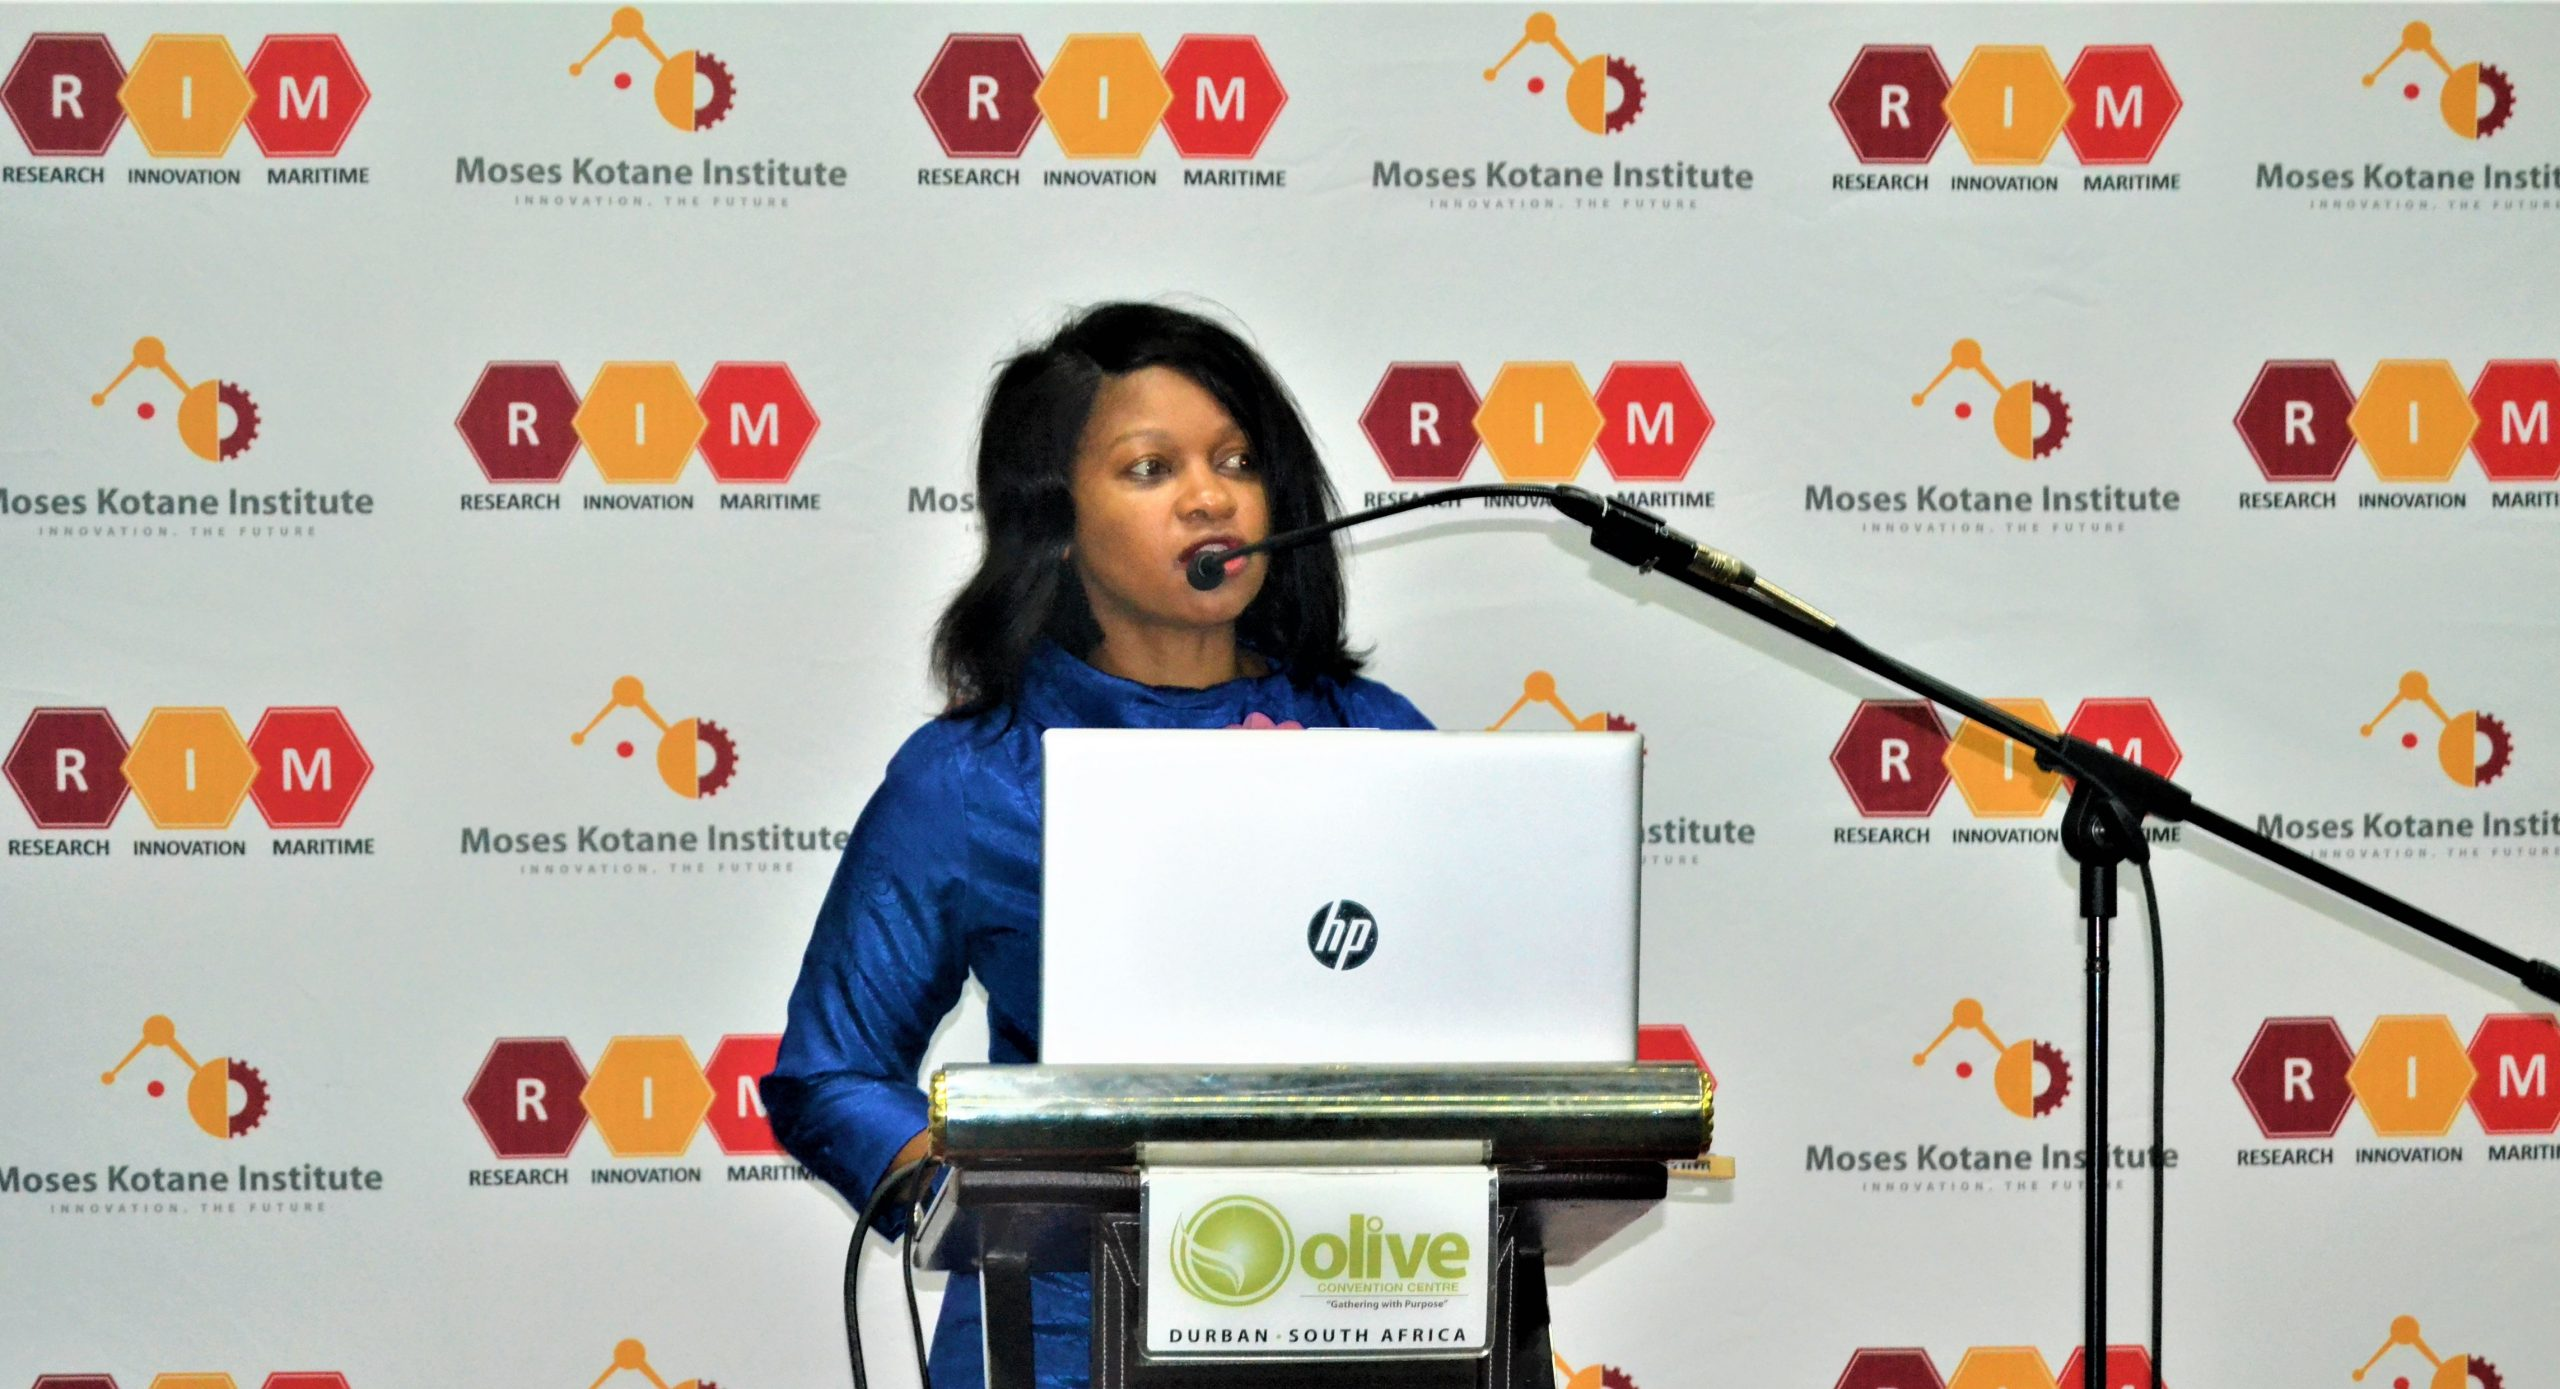 Thandeka Ellenson of Moses Kotane Institute at the KwaZulu-Natal Agro-Processing Sector Forum